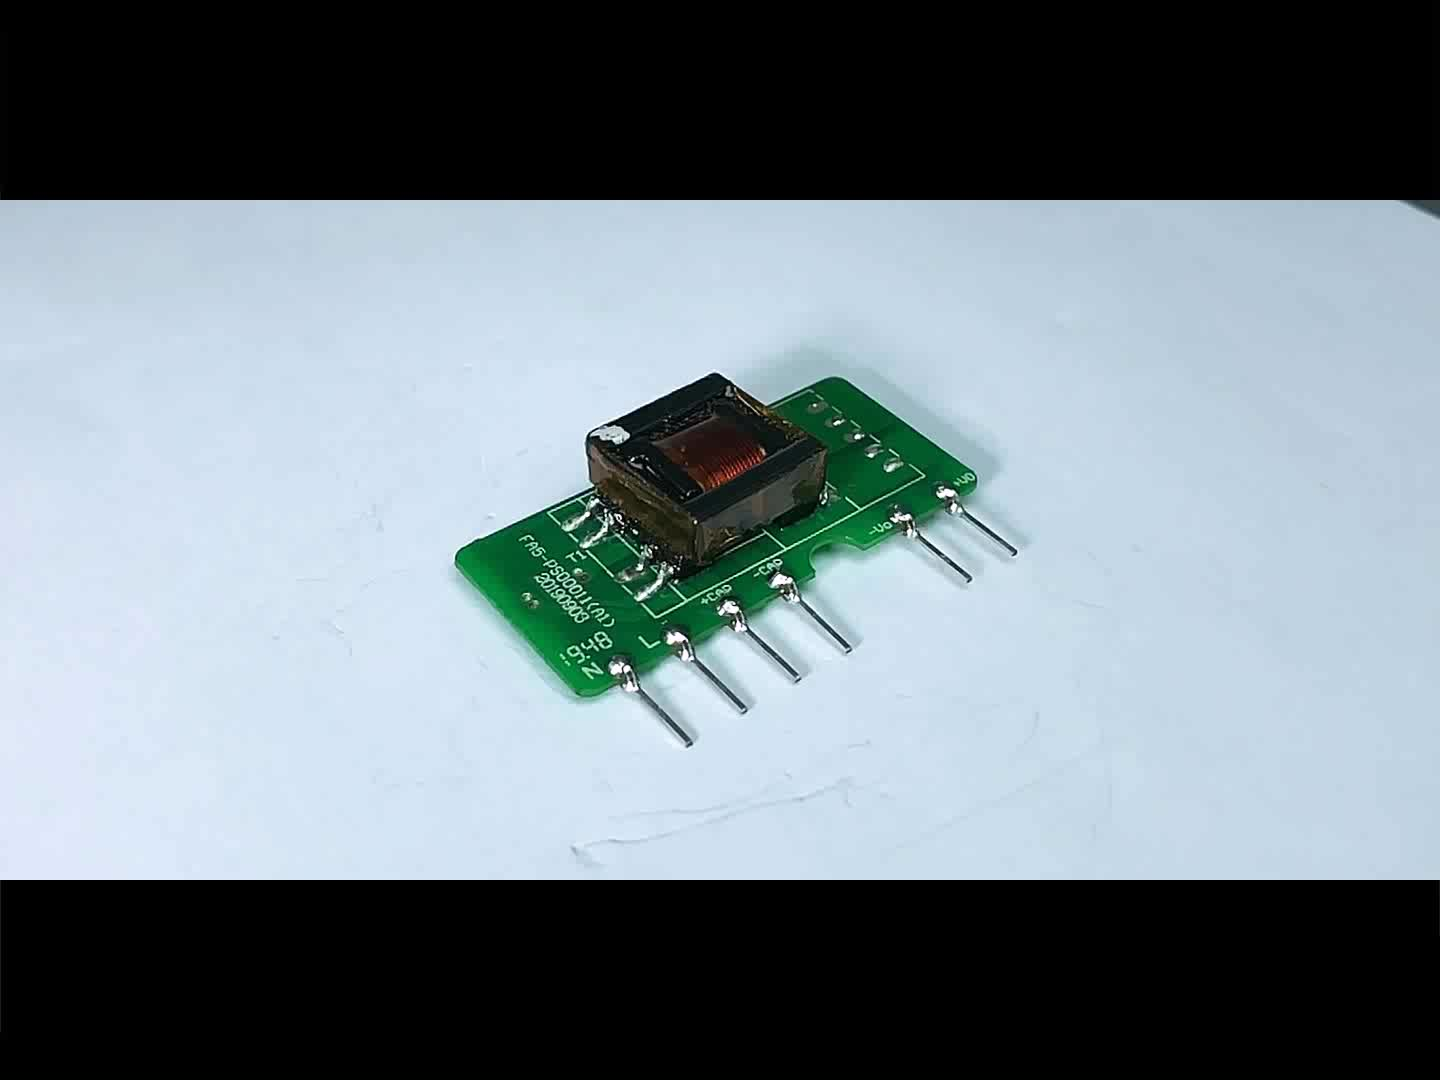 5W 220V to 5V 1A Bare Board Industrial Open Frame Cheap 5V DC Switching Power Supply Module